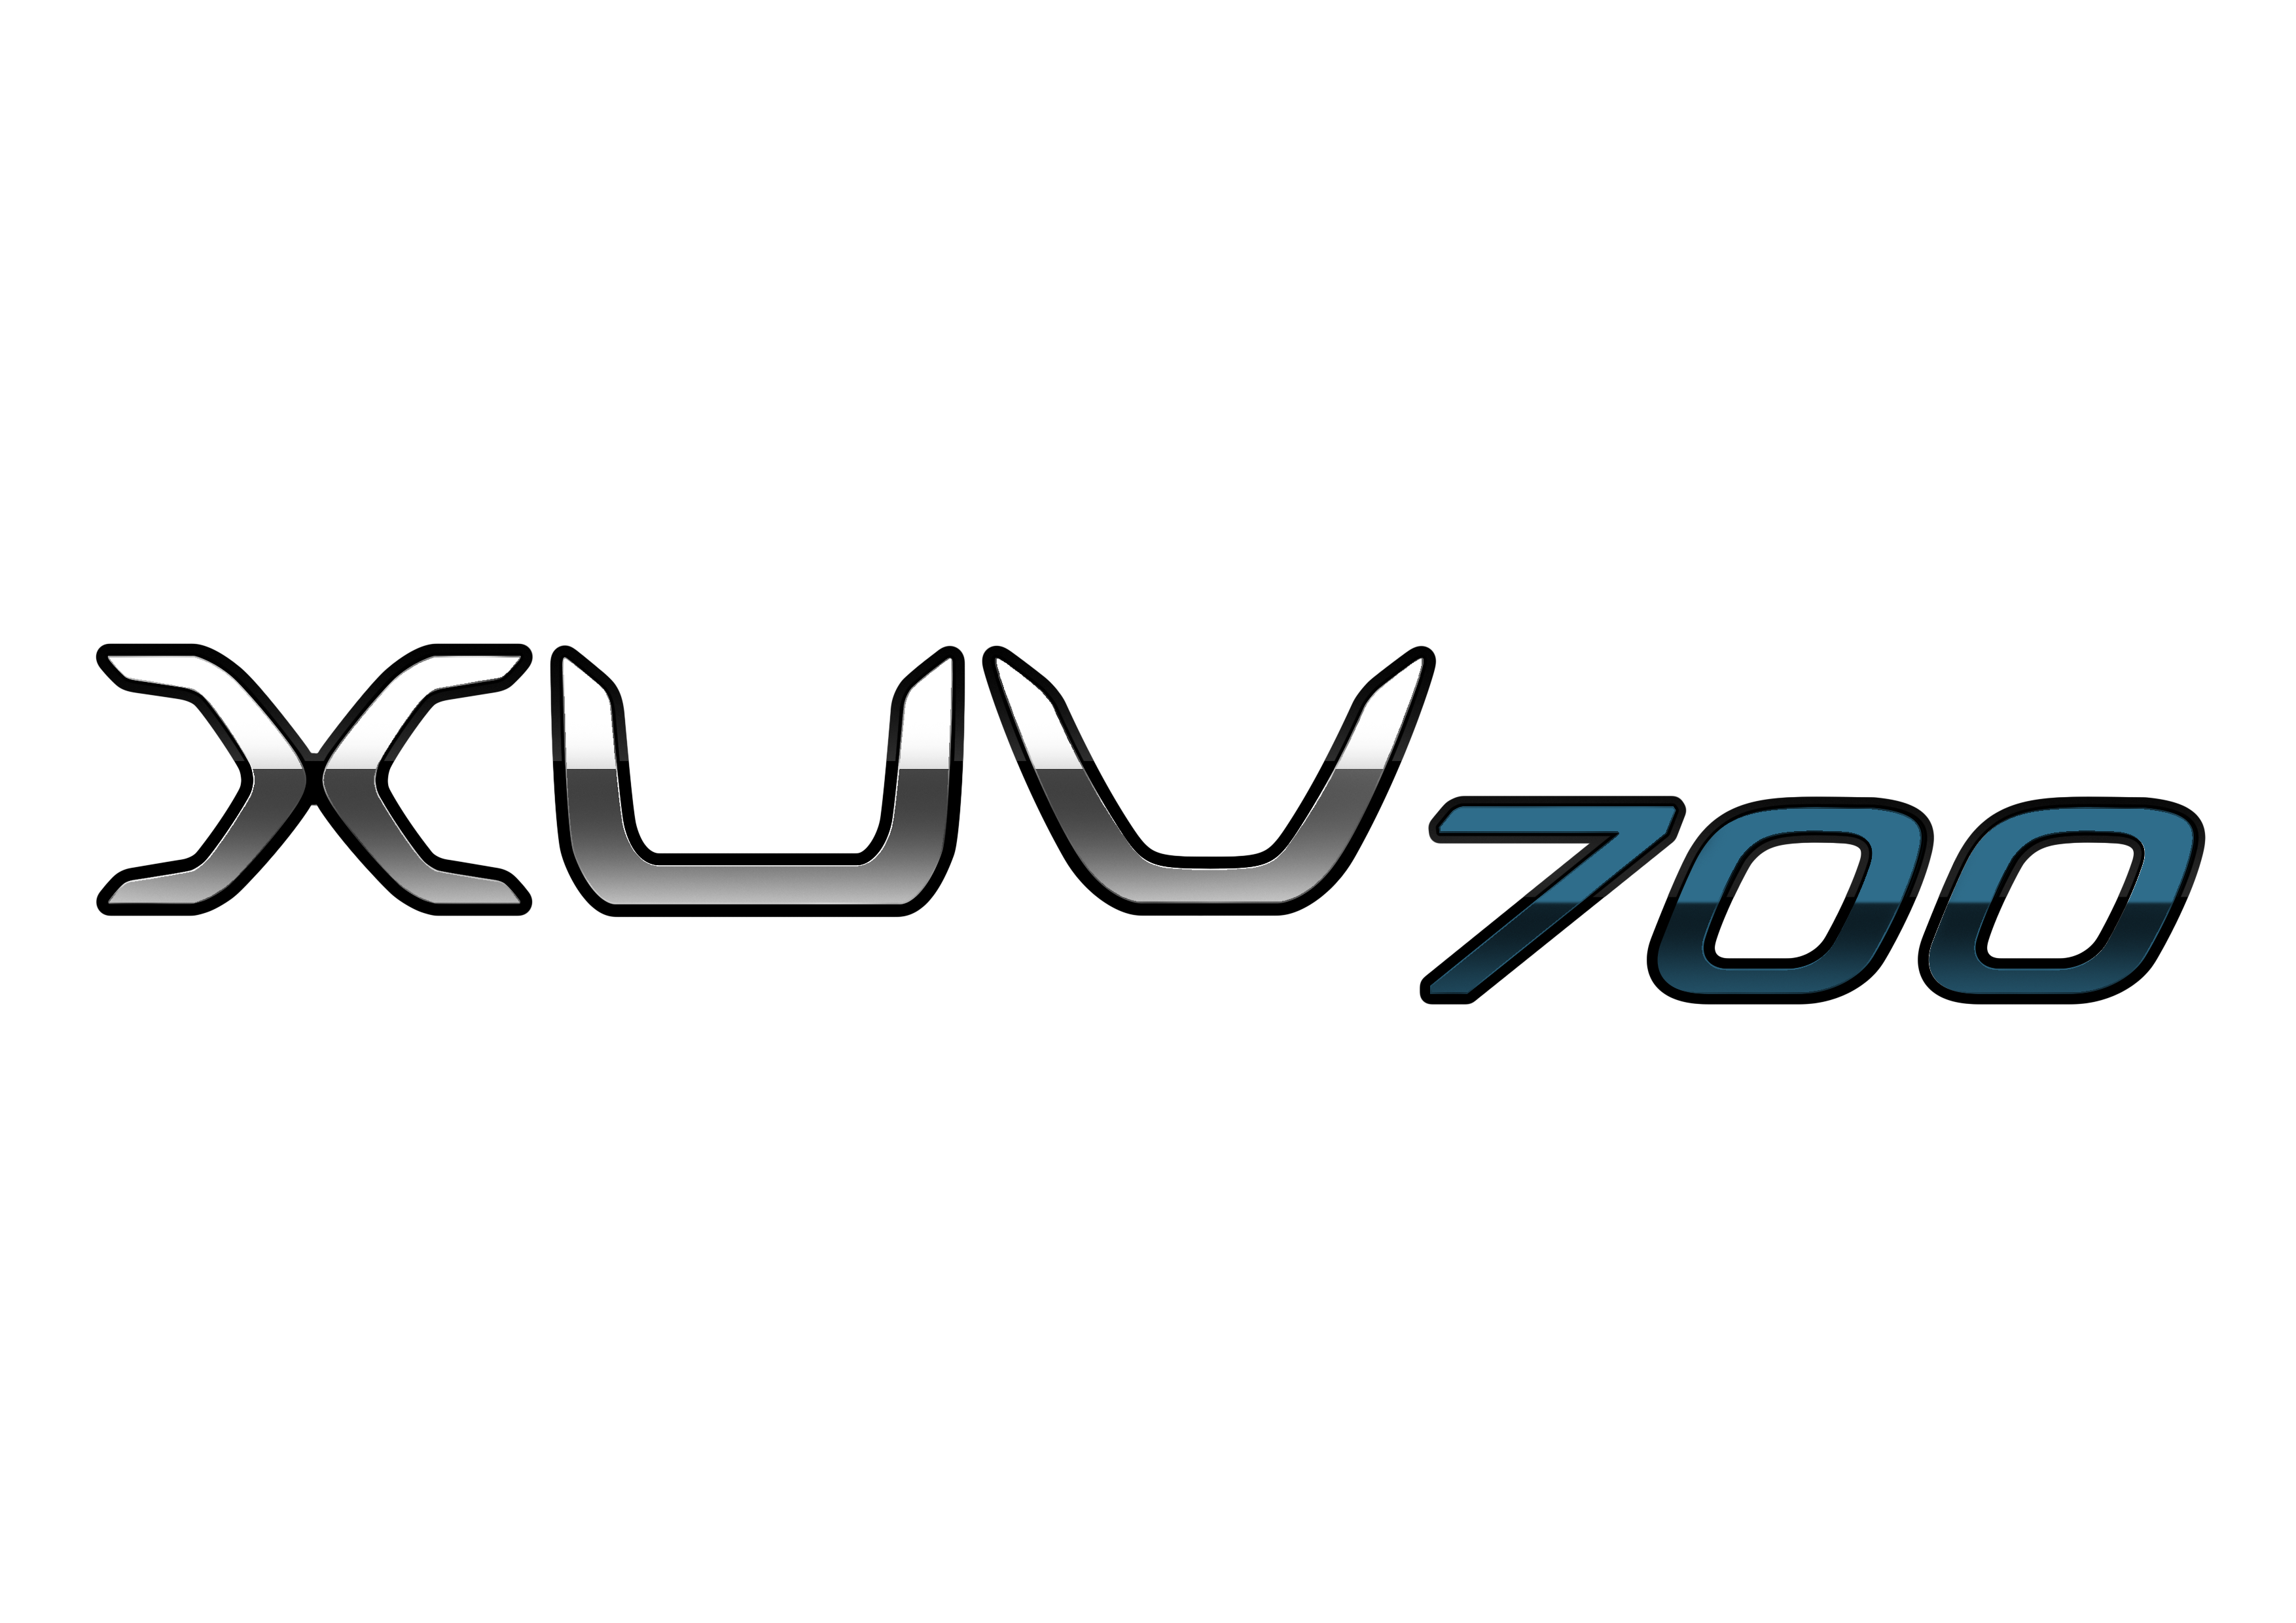 2021 Mahindra XUV 700 Ready For Launch - XUV 500 To Continue